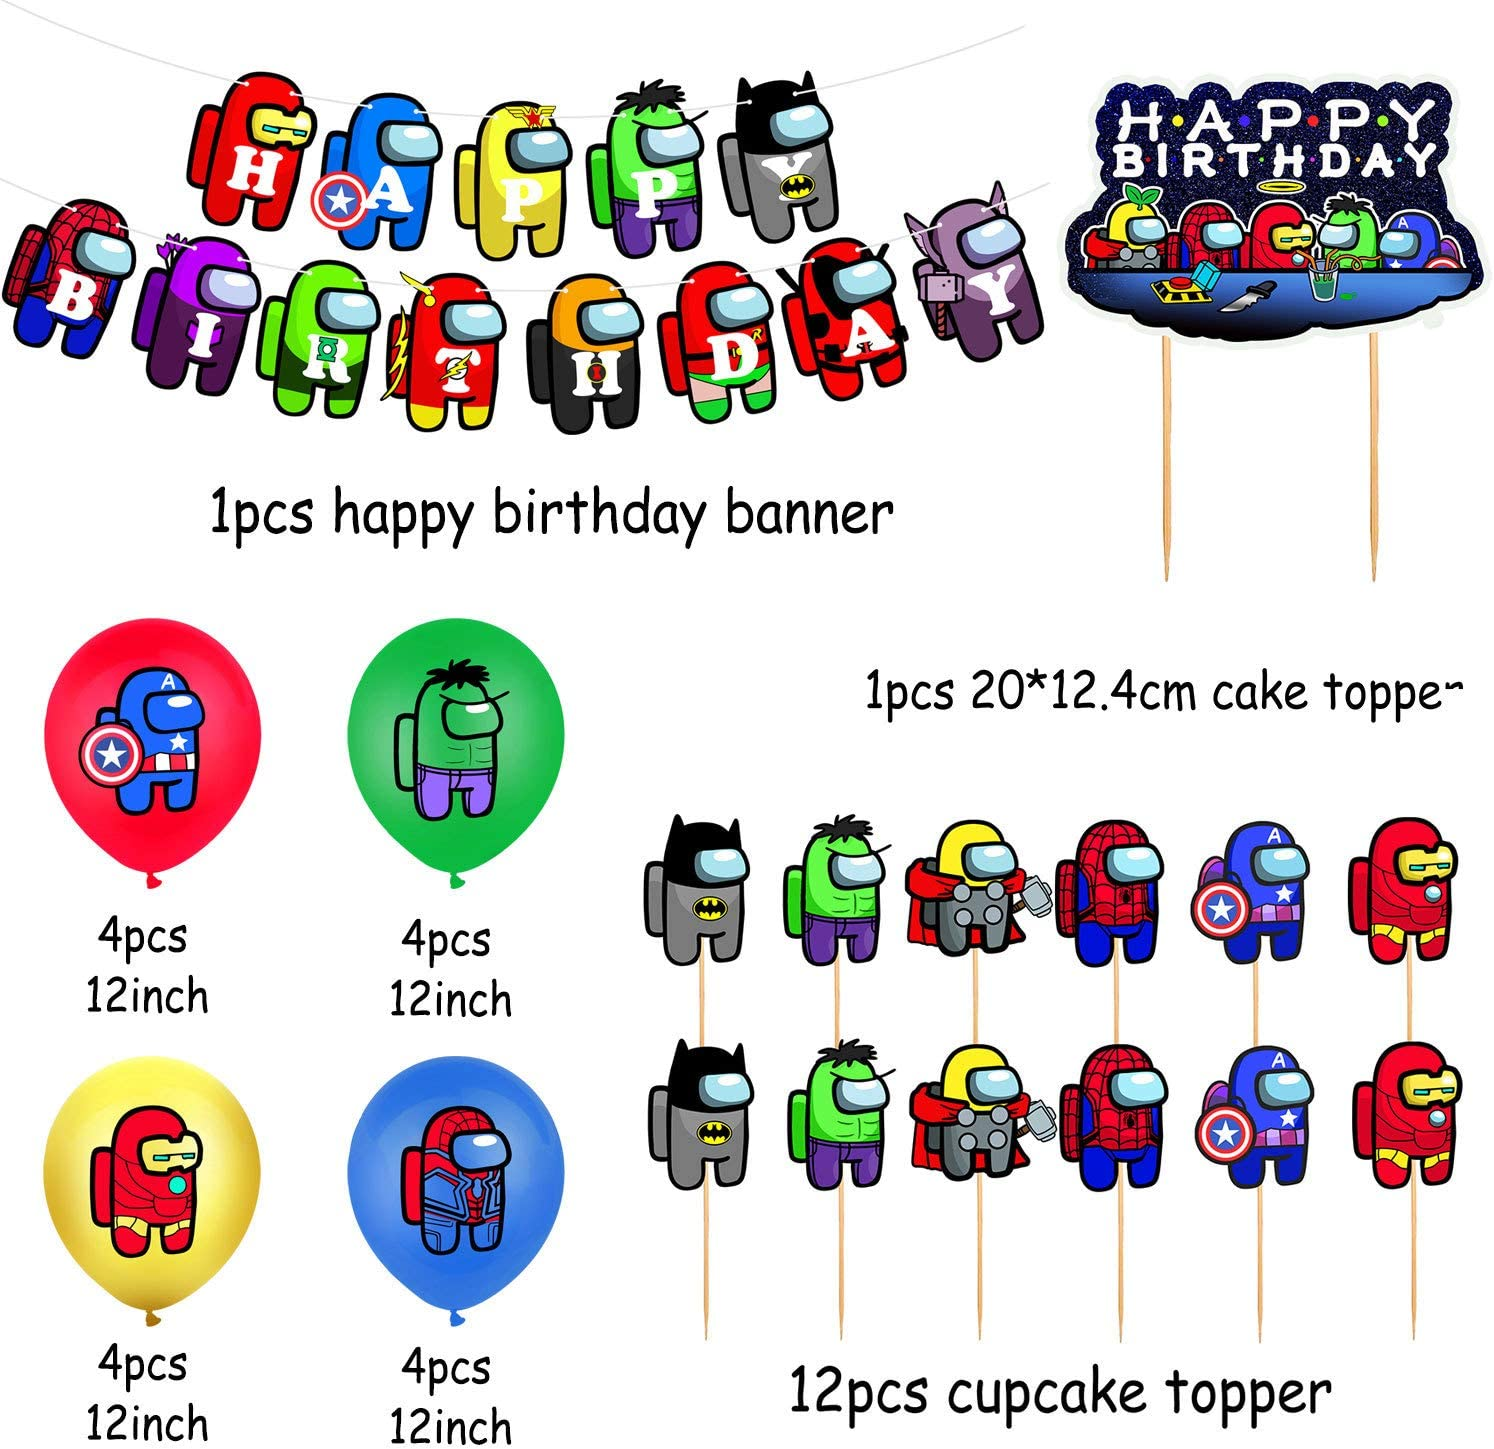 Balloons Among Us Birthday Decorations Among Us Avengers Party Supplies Video Game Set for Kids Include Happy Birthday Banner Cake Topper Cupcake Toppers